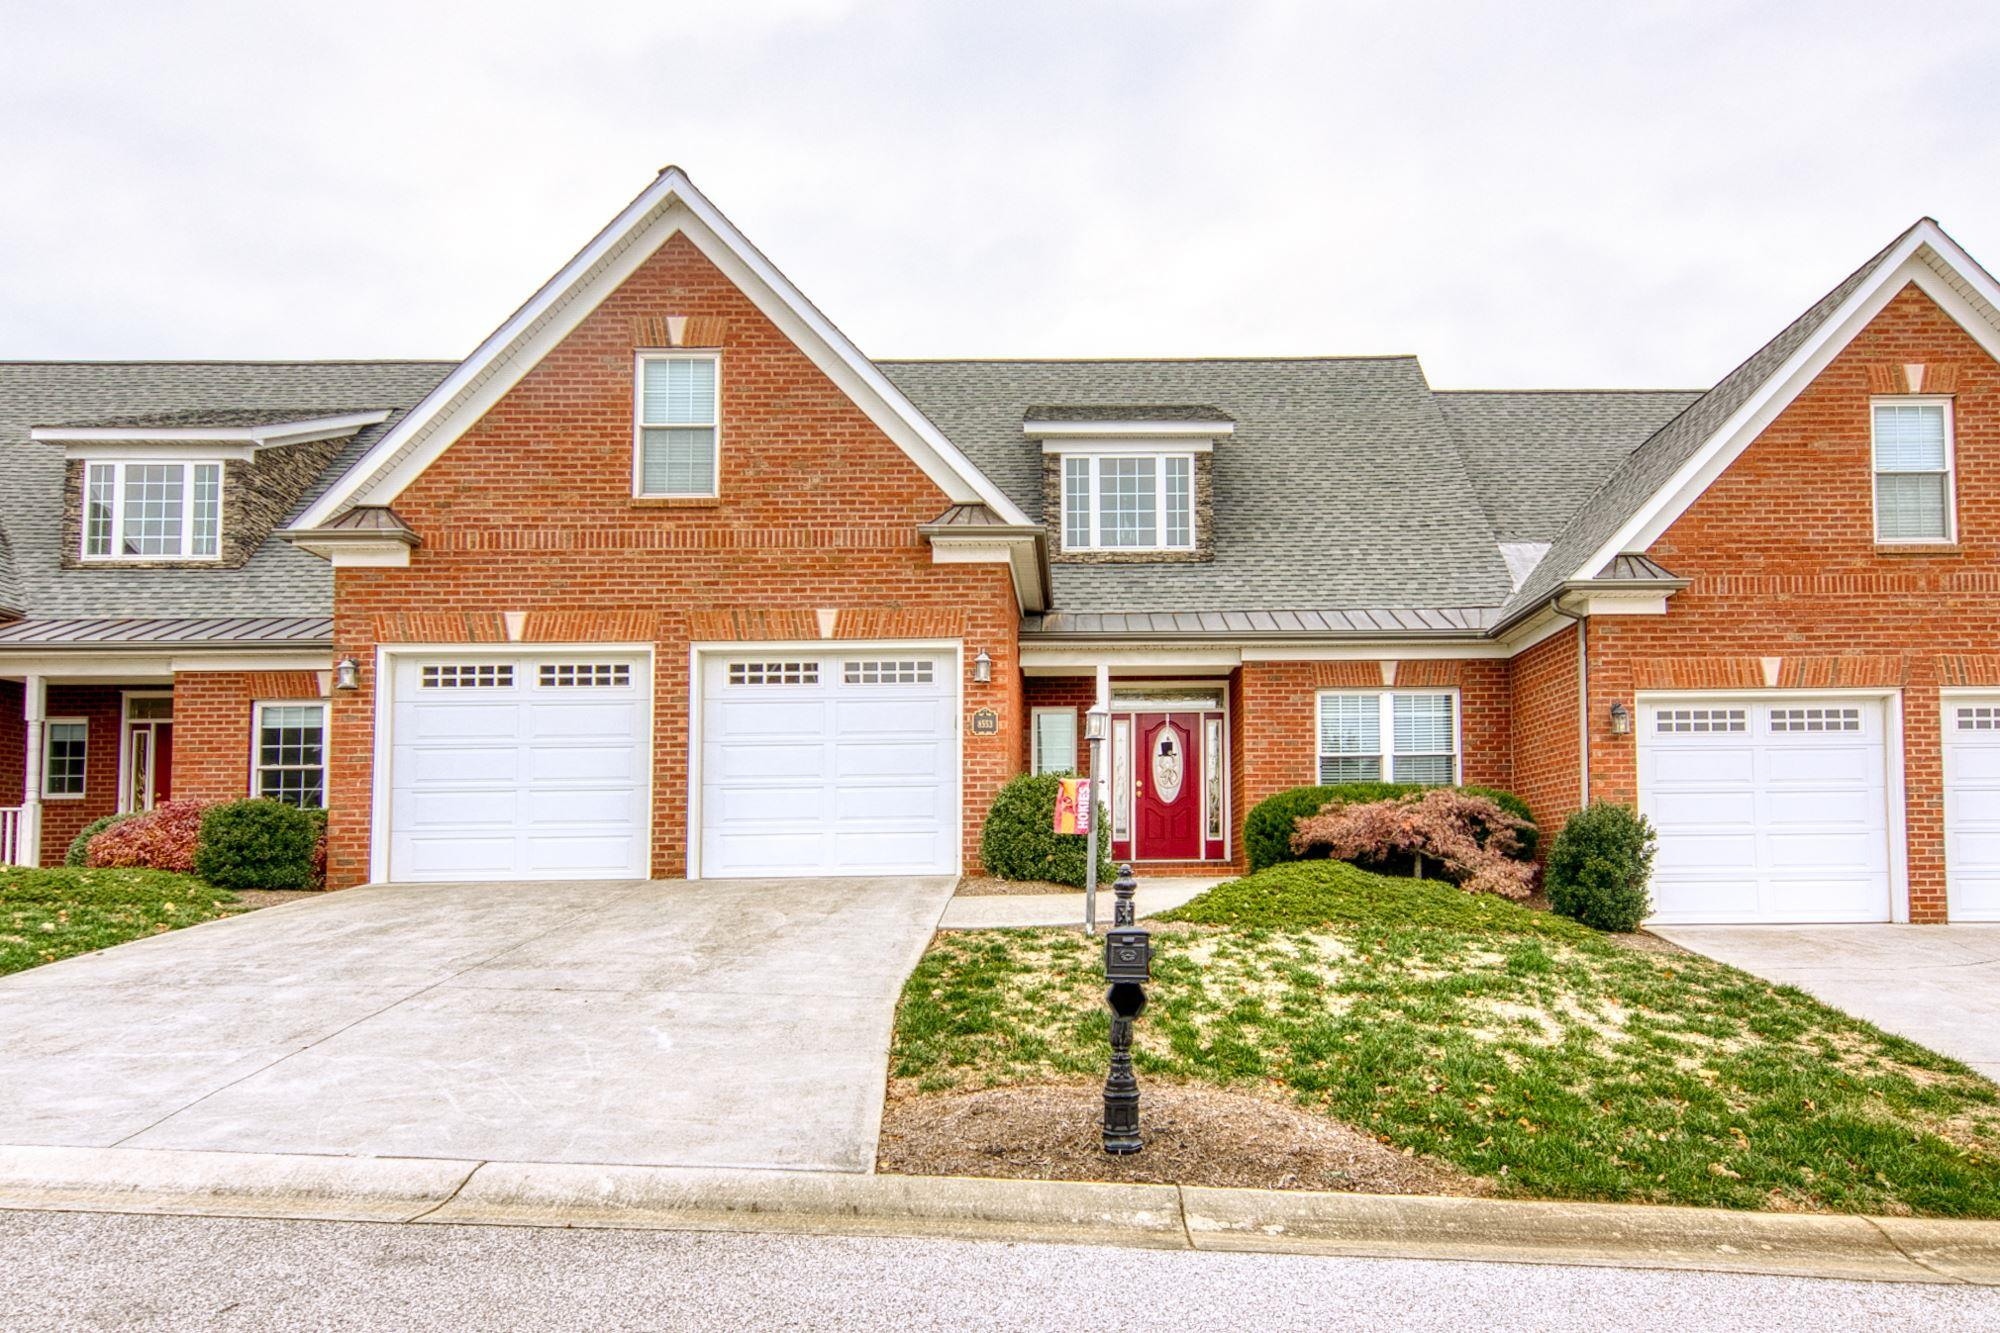 "Enjoy maintenance-free living in this 4BR/2.5BA 2500sf townhome in desirable Quarters at Herons Landing. A 2-story foyer leads to a large great room with gas fireplace, open to a dining area and chef's kitchen, where you'll find lots of high quality amenities, including 42"" cabinets with peninsula featuring bar seating, granite counter-tops, gleaming hardwood floors, stainless steel appliances, and custom tile back splash. A separate dining room overlooks the front yard. From the great room, enter the large screened porch. The main level master suite features high ceilings and crown moldings, a private bath w/ double vanity, shower & a large walk-in closet. Also on the main level are a powder room, laundry room w/ sink, and a 2-car garage. Upstairs you'll find a family room, 3 additional bedrooms, an office, and full bath. Built-ins and storage nooks are scattered throughout the home. The HOA takes care of lawn care, snow removal, and roof replacement. Call to tour today!"